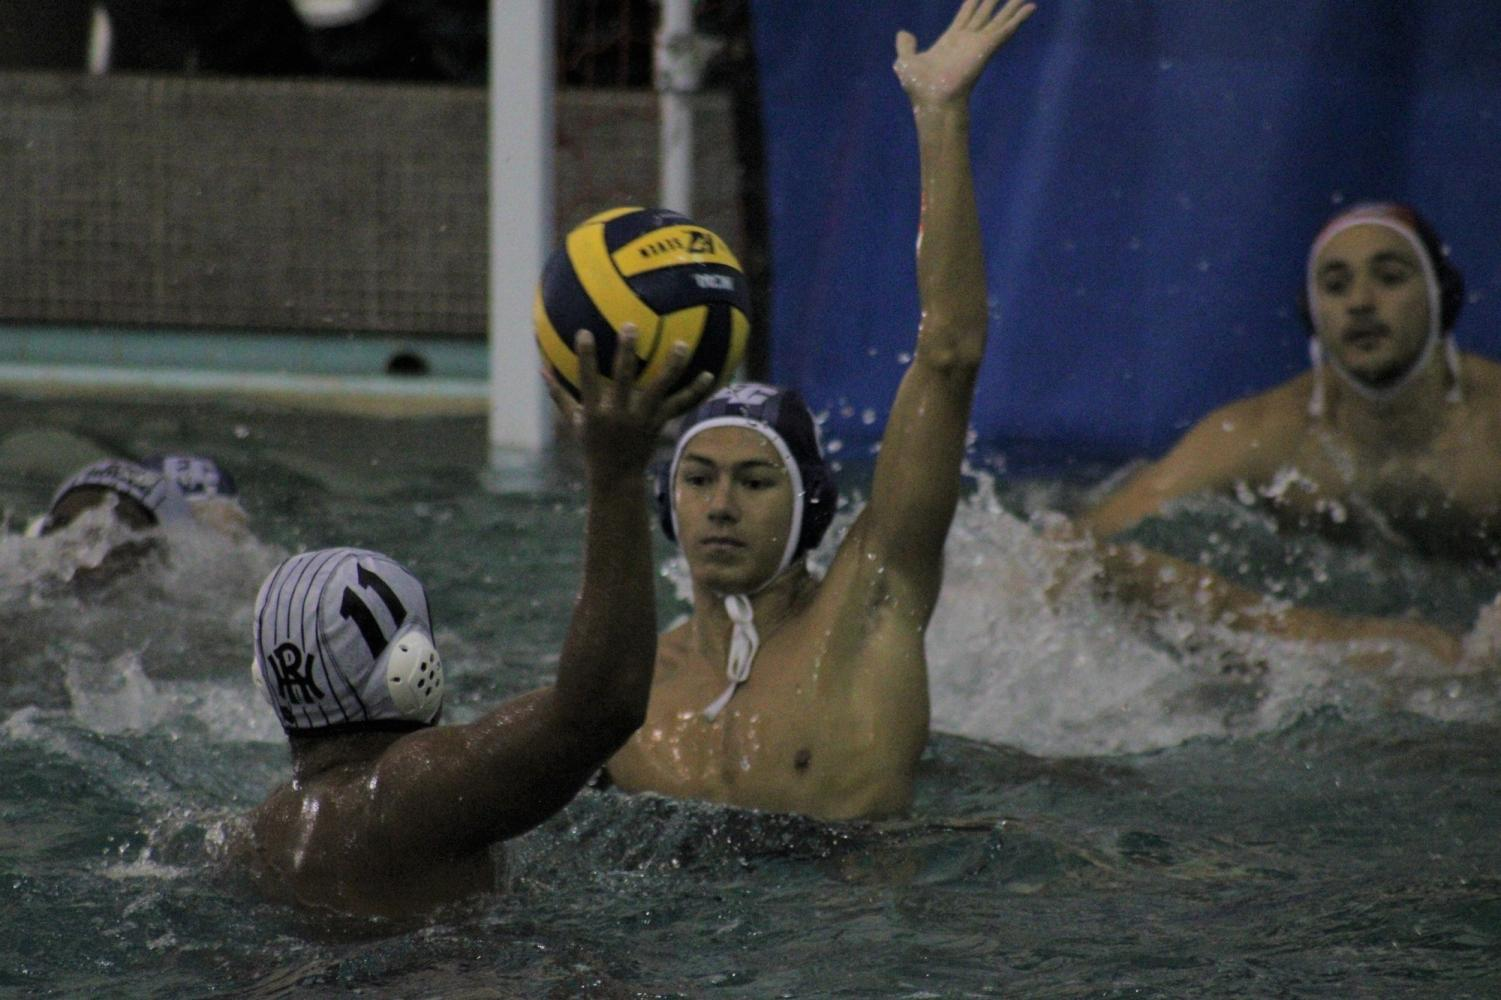 El Camino College men's water polo attacker Adian Morvice attempts to block Rio Hondo College attacker Jacob Ayala in front of the goal post during their game on Wednesday, Oct. 28 at the ECC pool. The Warriors clinched their first playoff berth since 1993. Jaime Solis/ The Union